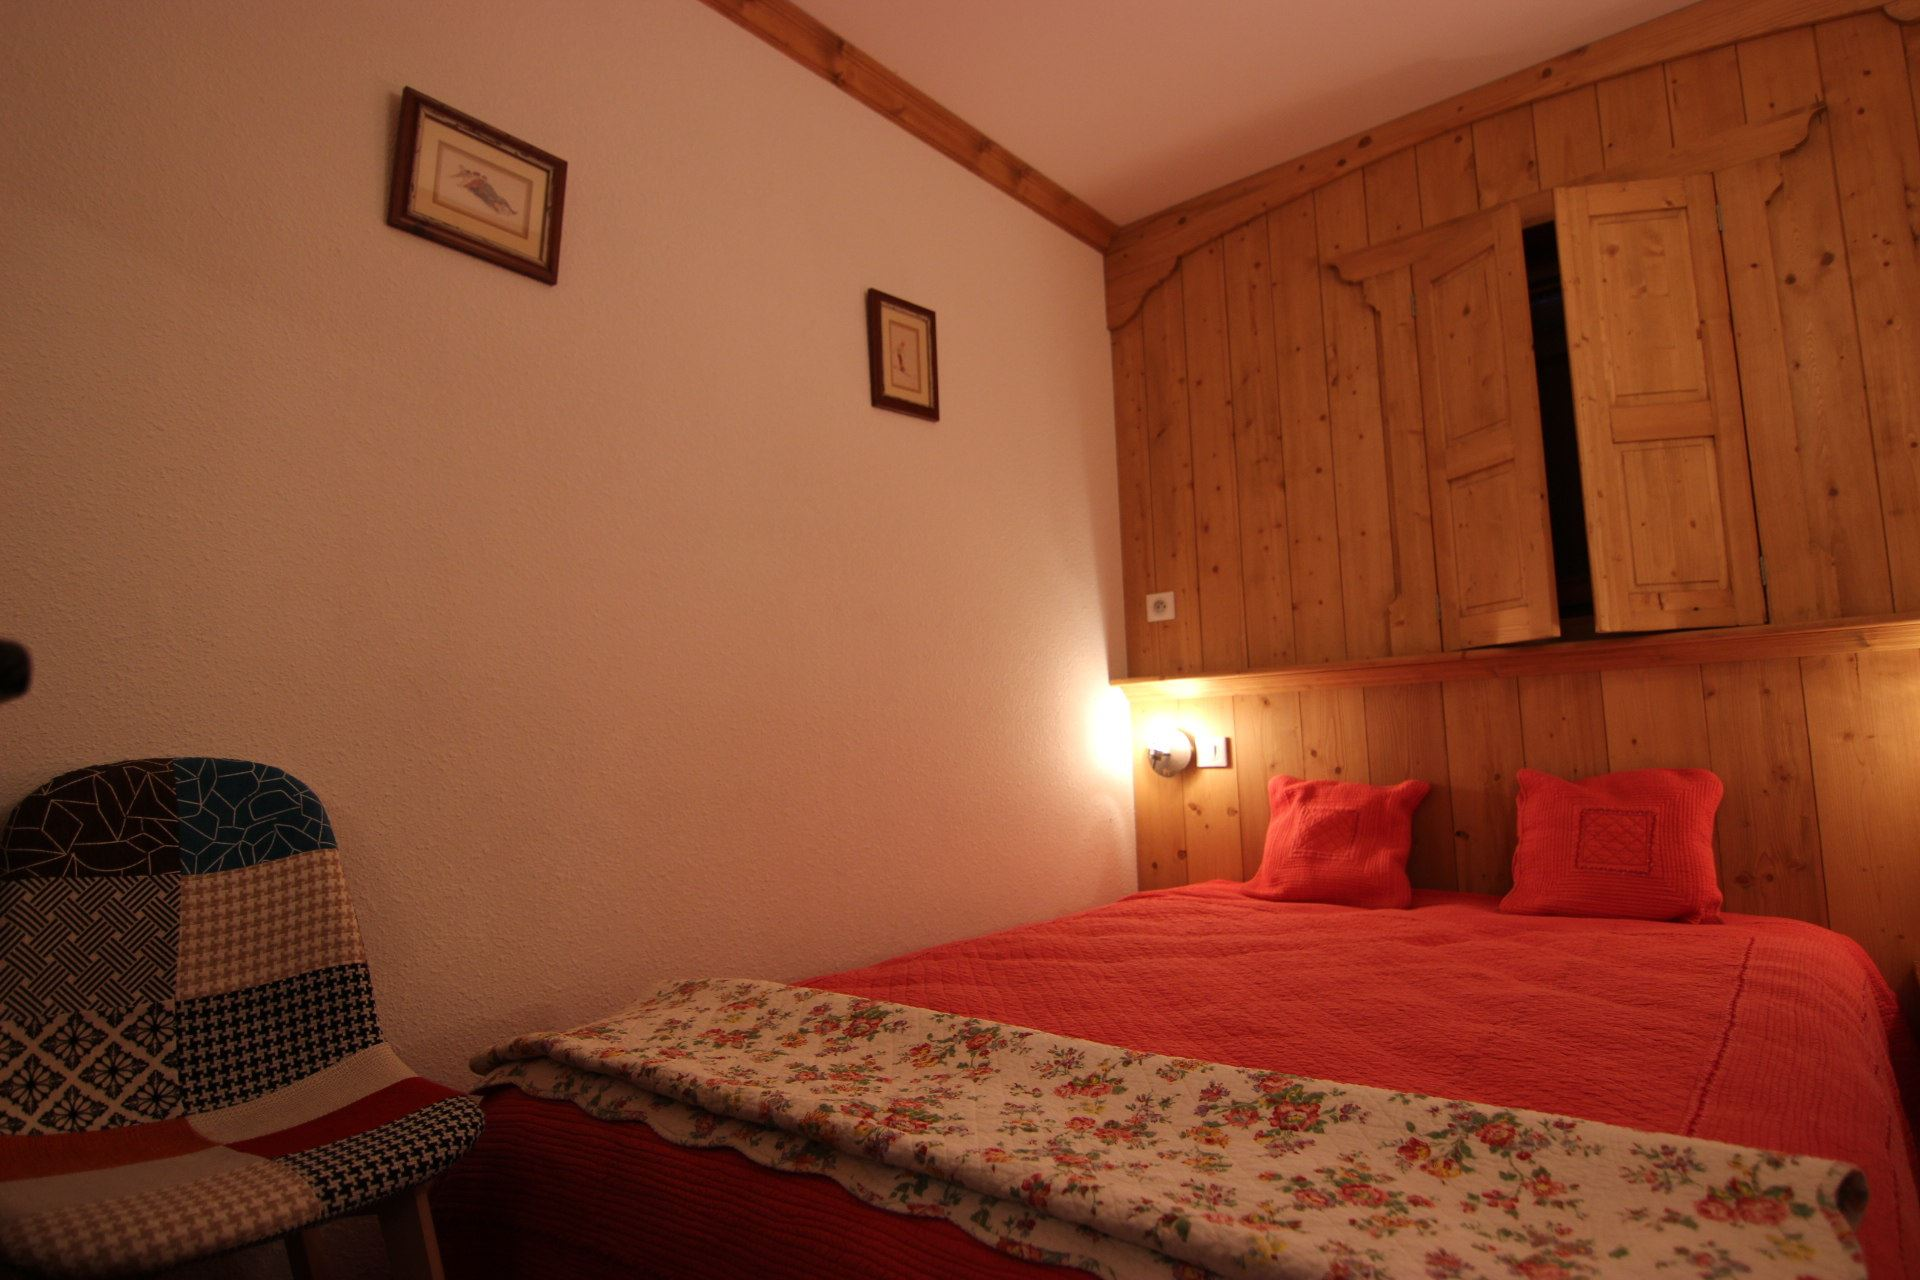 BEAU SOLEIL 10 / 3 ROOMS 6 PEOPLE - 2 SILVER SNOWFLAKES - VTI